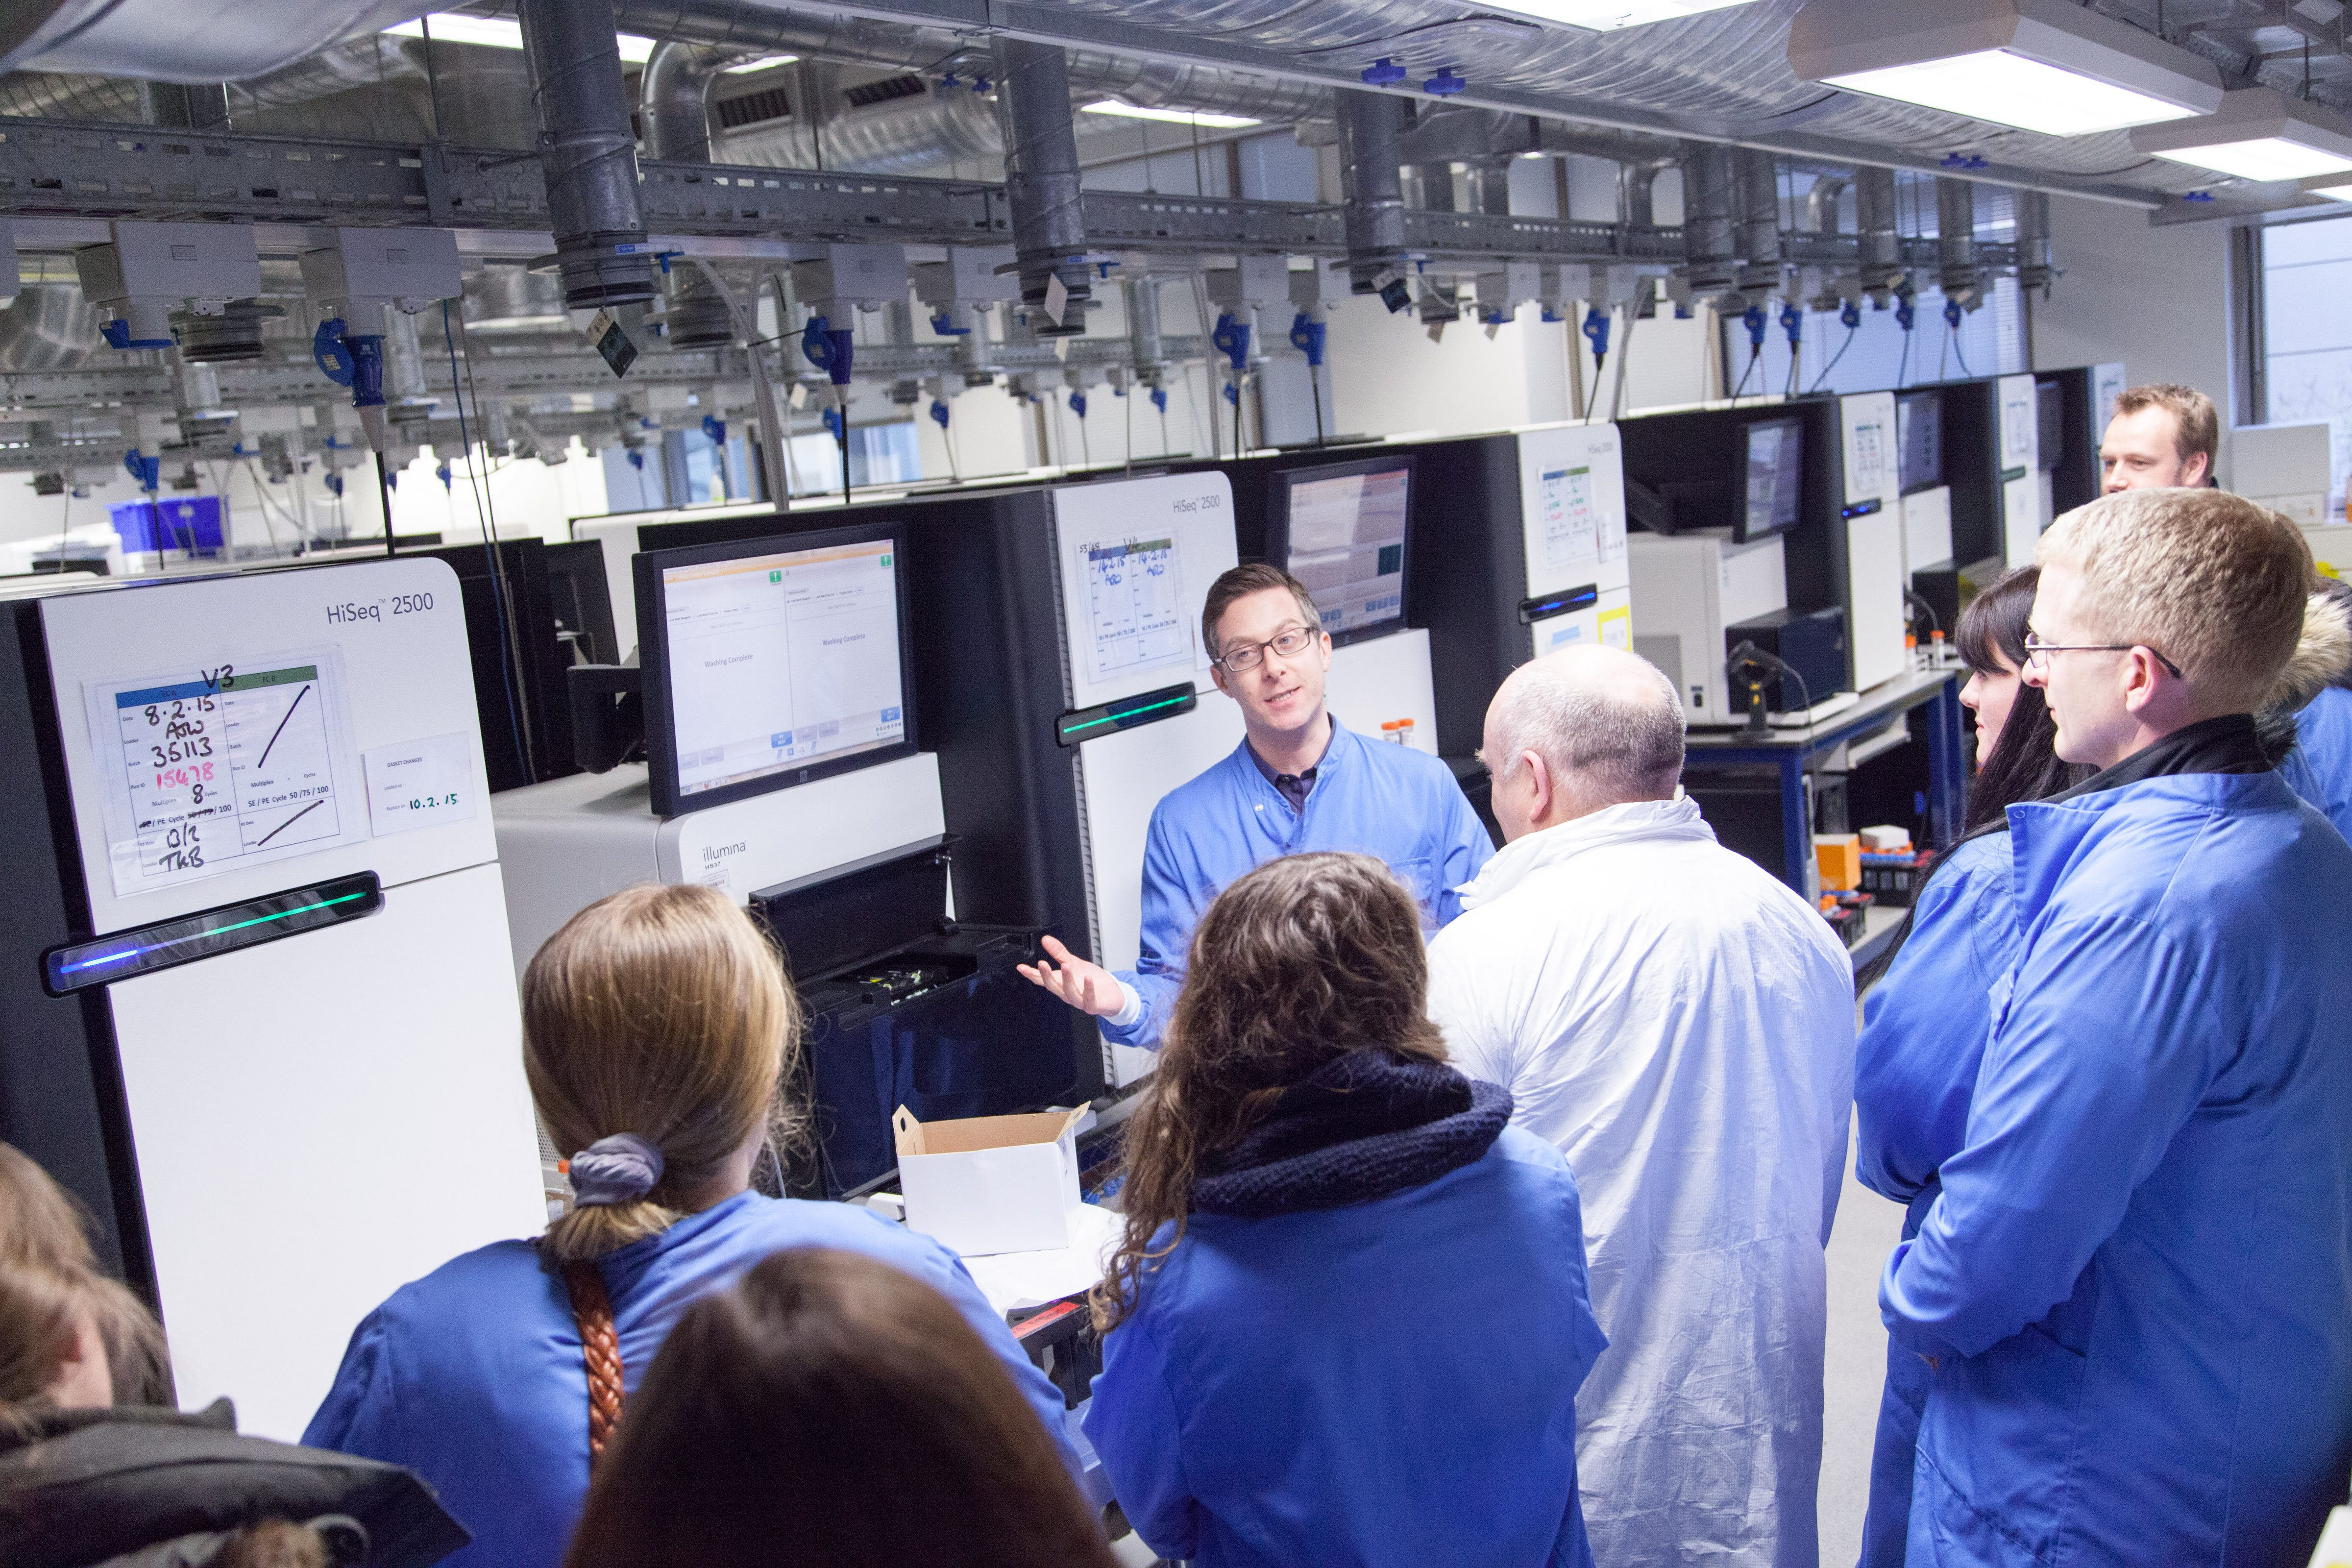 LEARN ABOUT GENETICS at mrc harwell